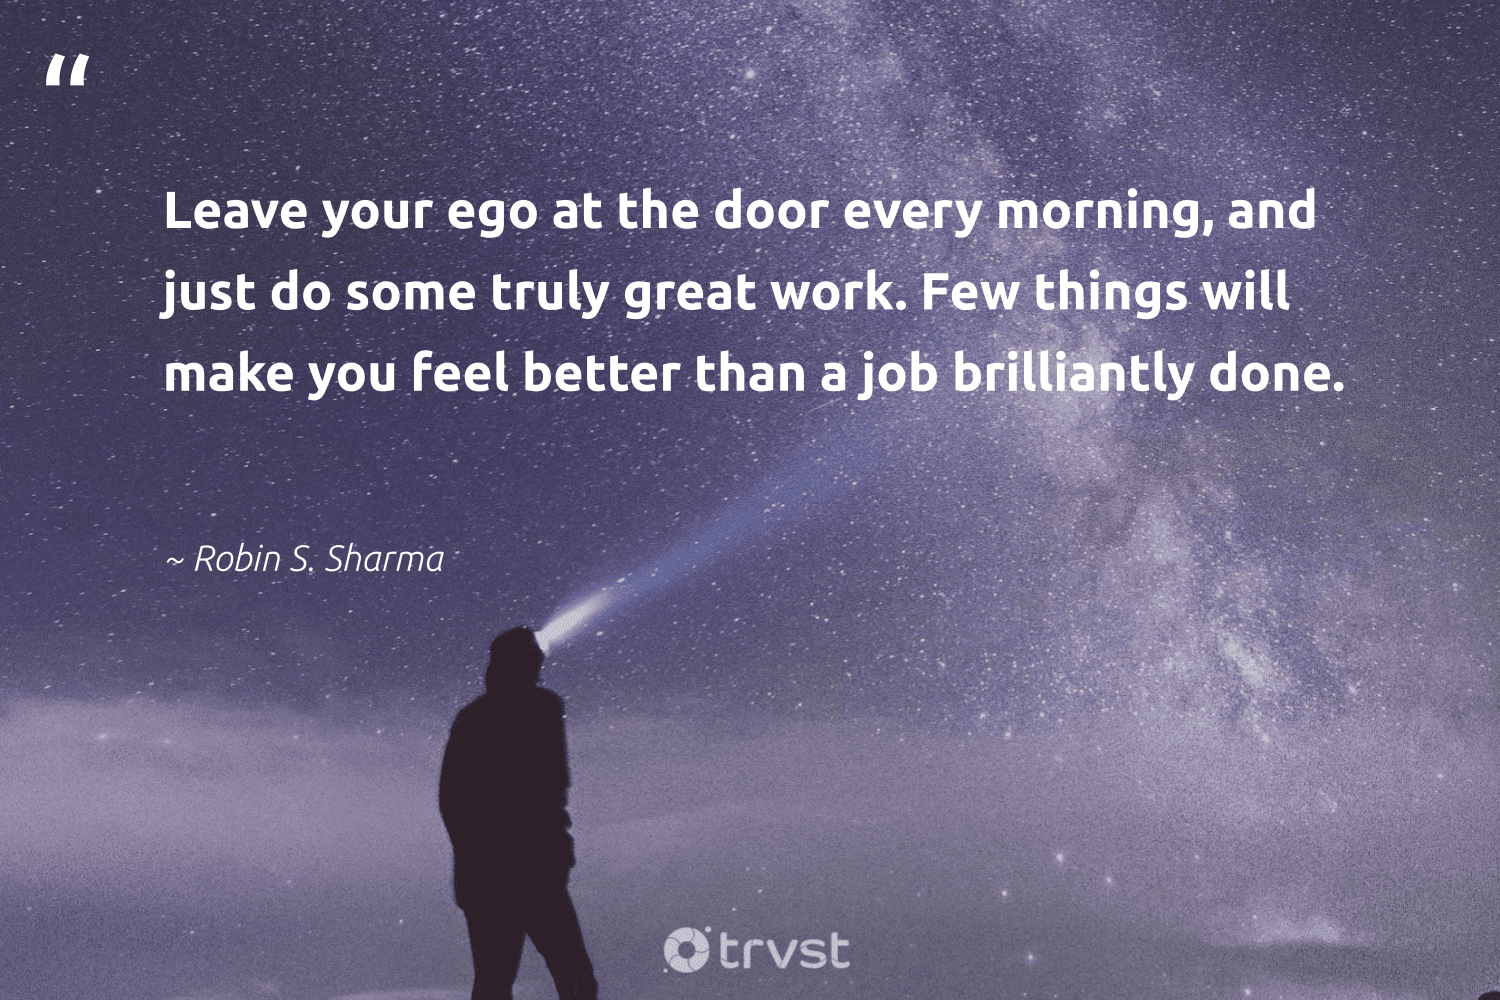 """""""Leave your ego at the door every morning, and just do some truly great work. Few things will make you feel better than a job brilliantly done.""""  - Robin S. Sharma #trvst #quotes #nevergiveup #socialchange #softskills #impact #futureofwork #thinkgreen #begreat #bethechange #dosomething #beinspired"""